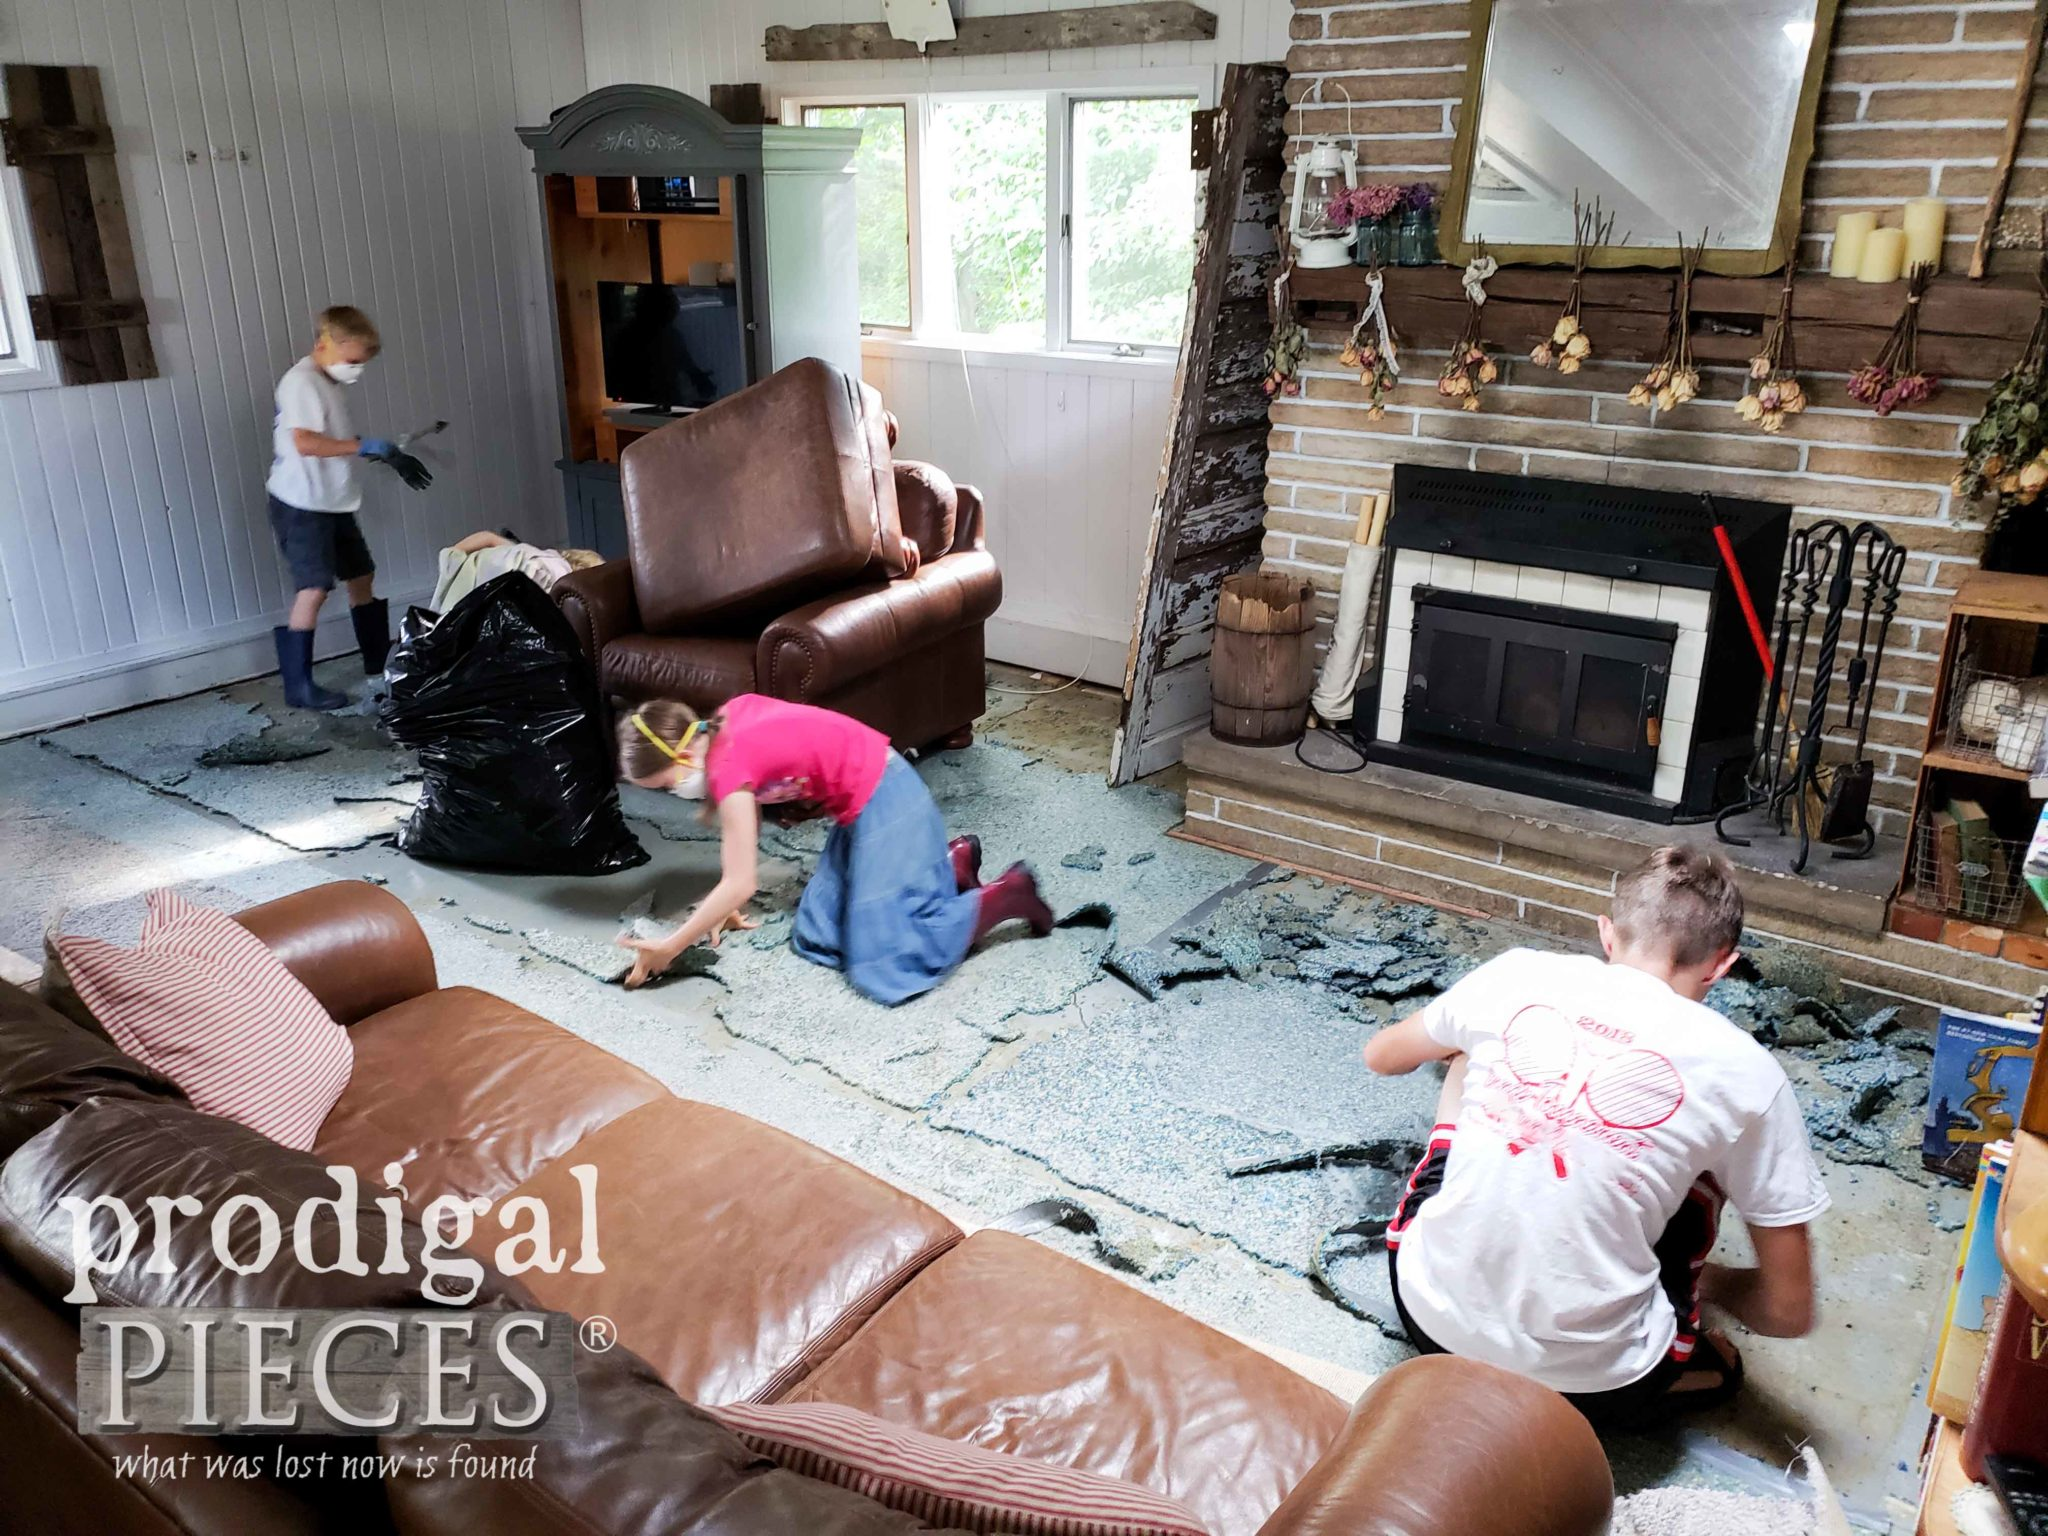 Kids Helping Tear Out Old Carpet | prodigalpieces.com